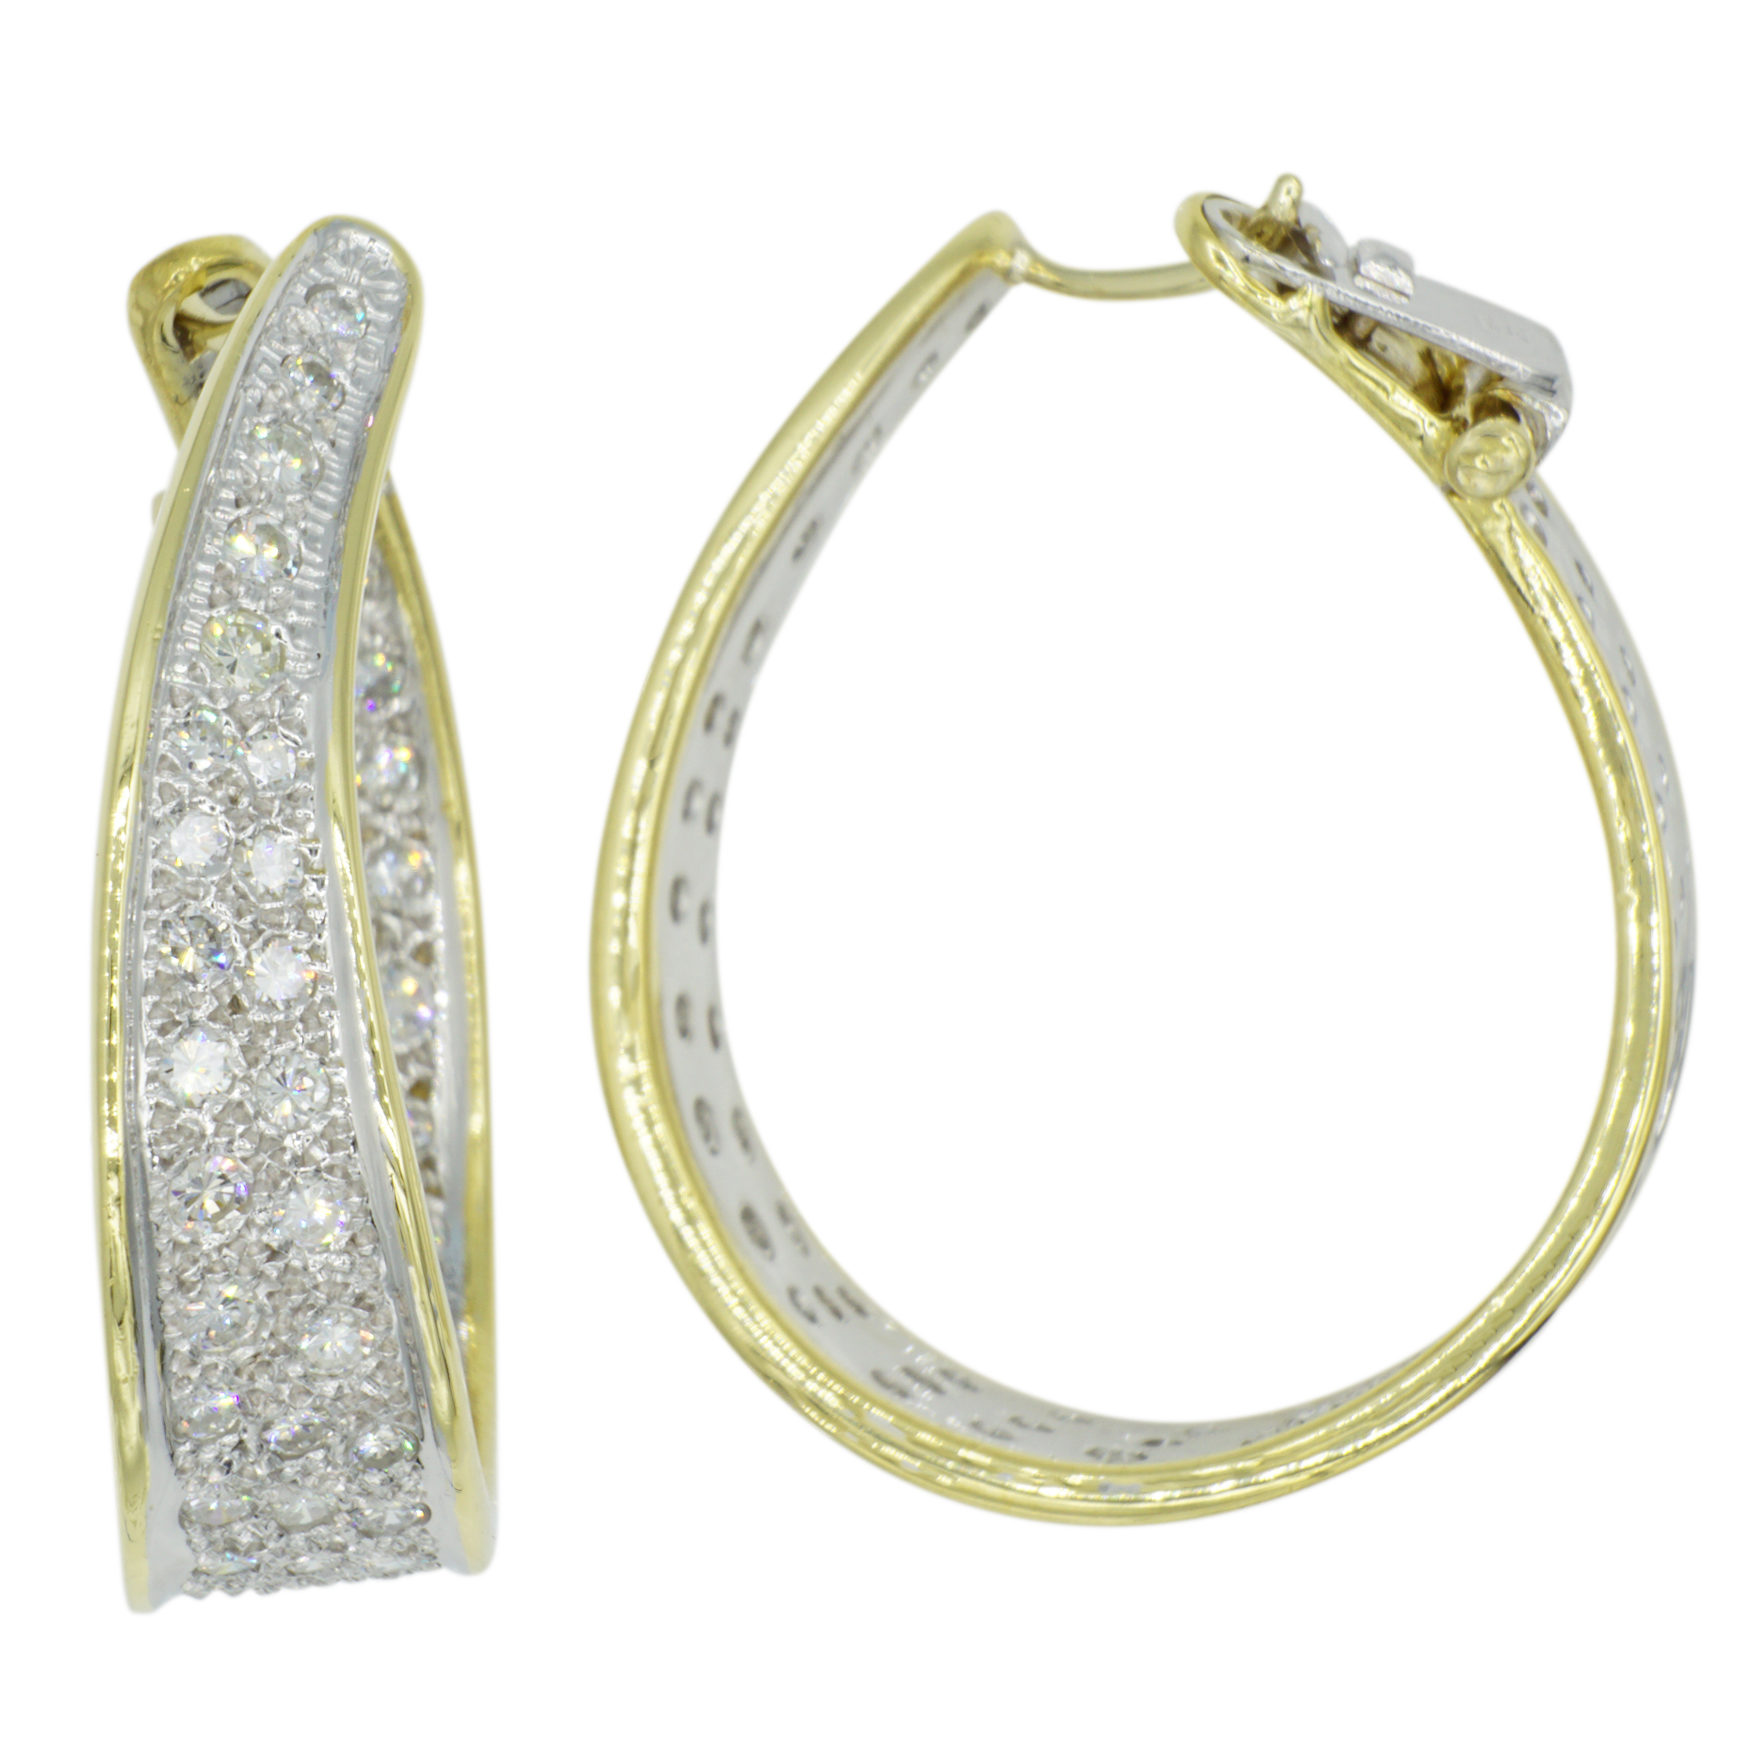 14kt Two-Tone Diamond Earrings